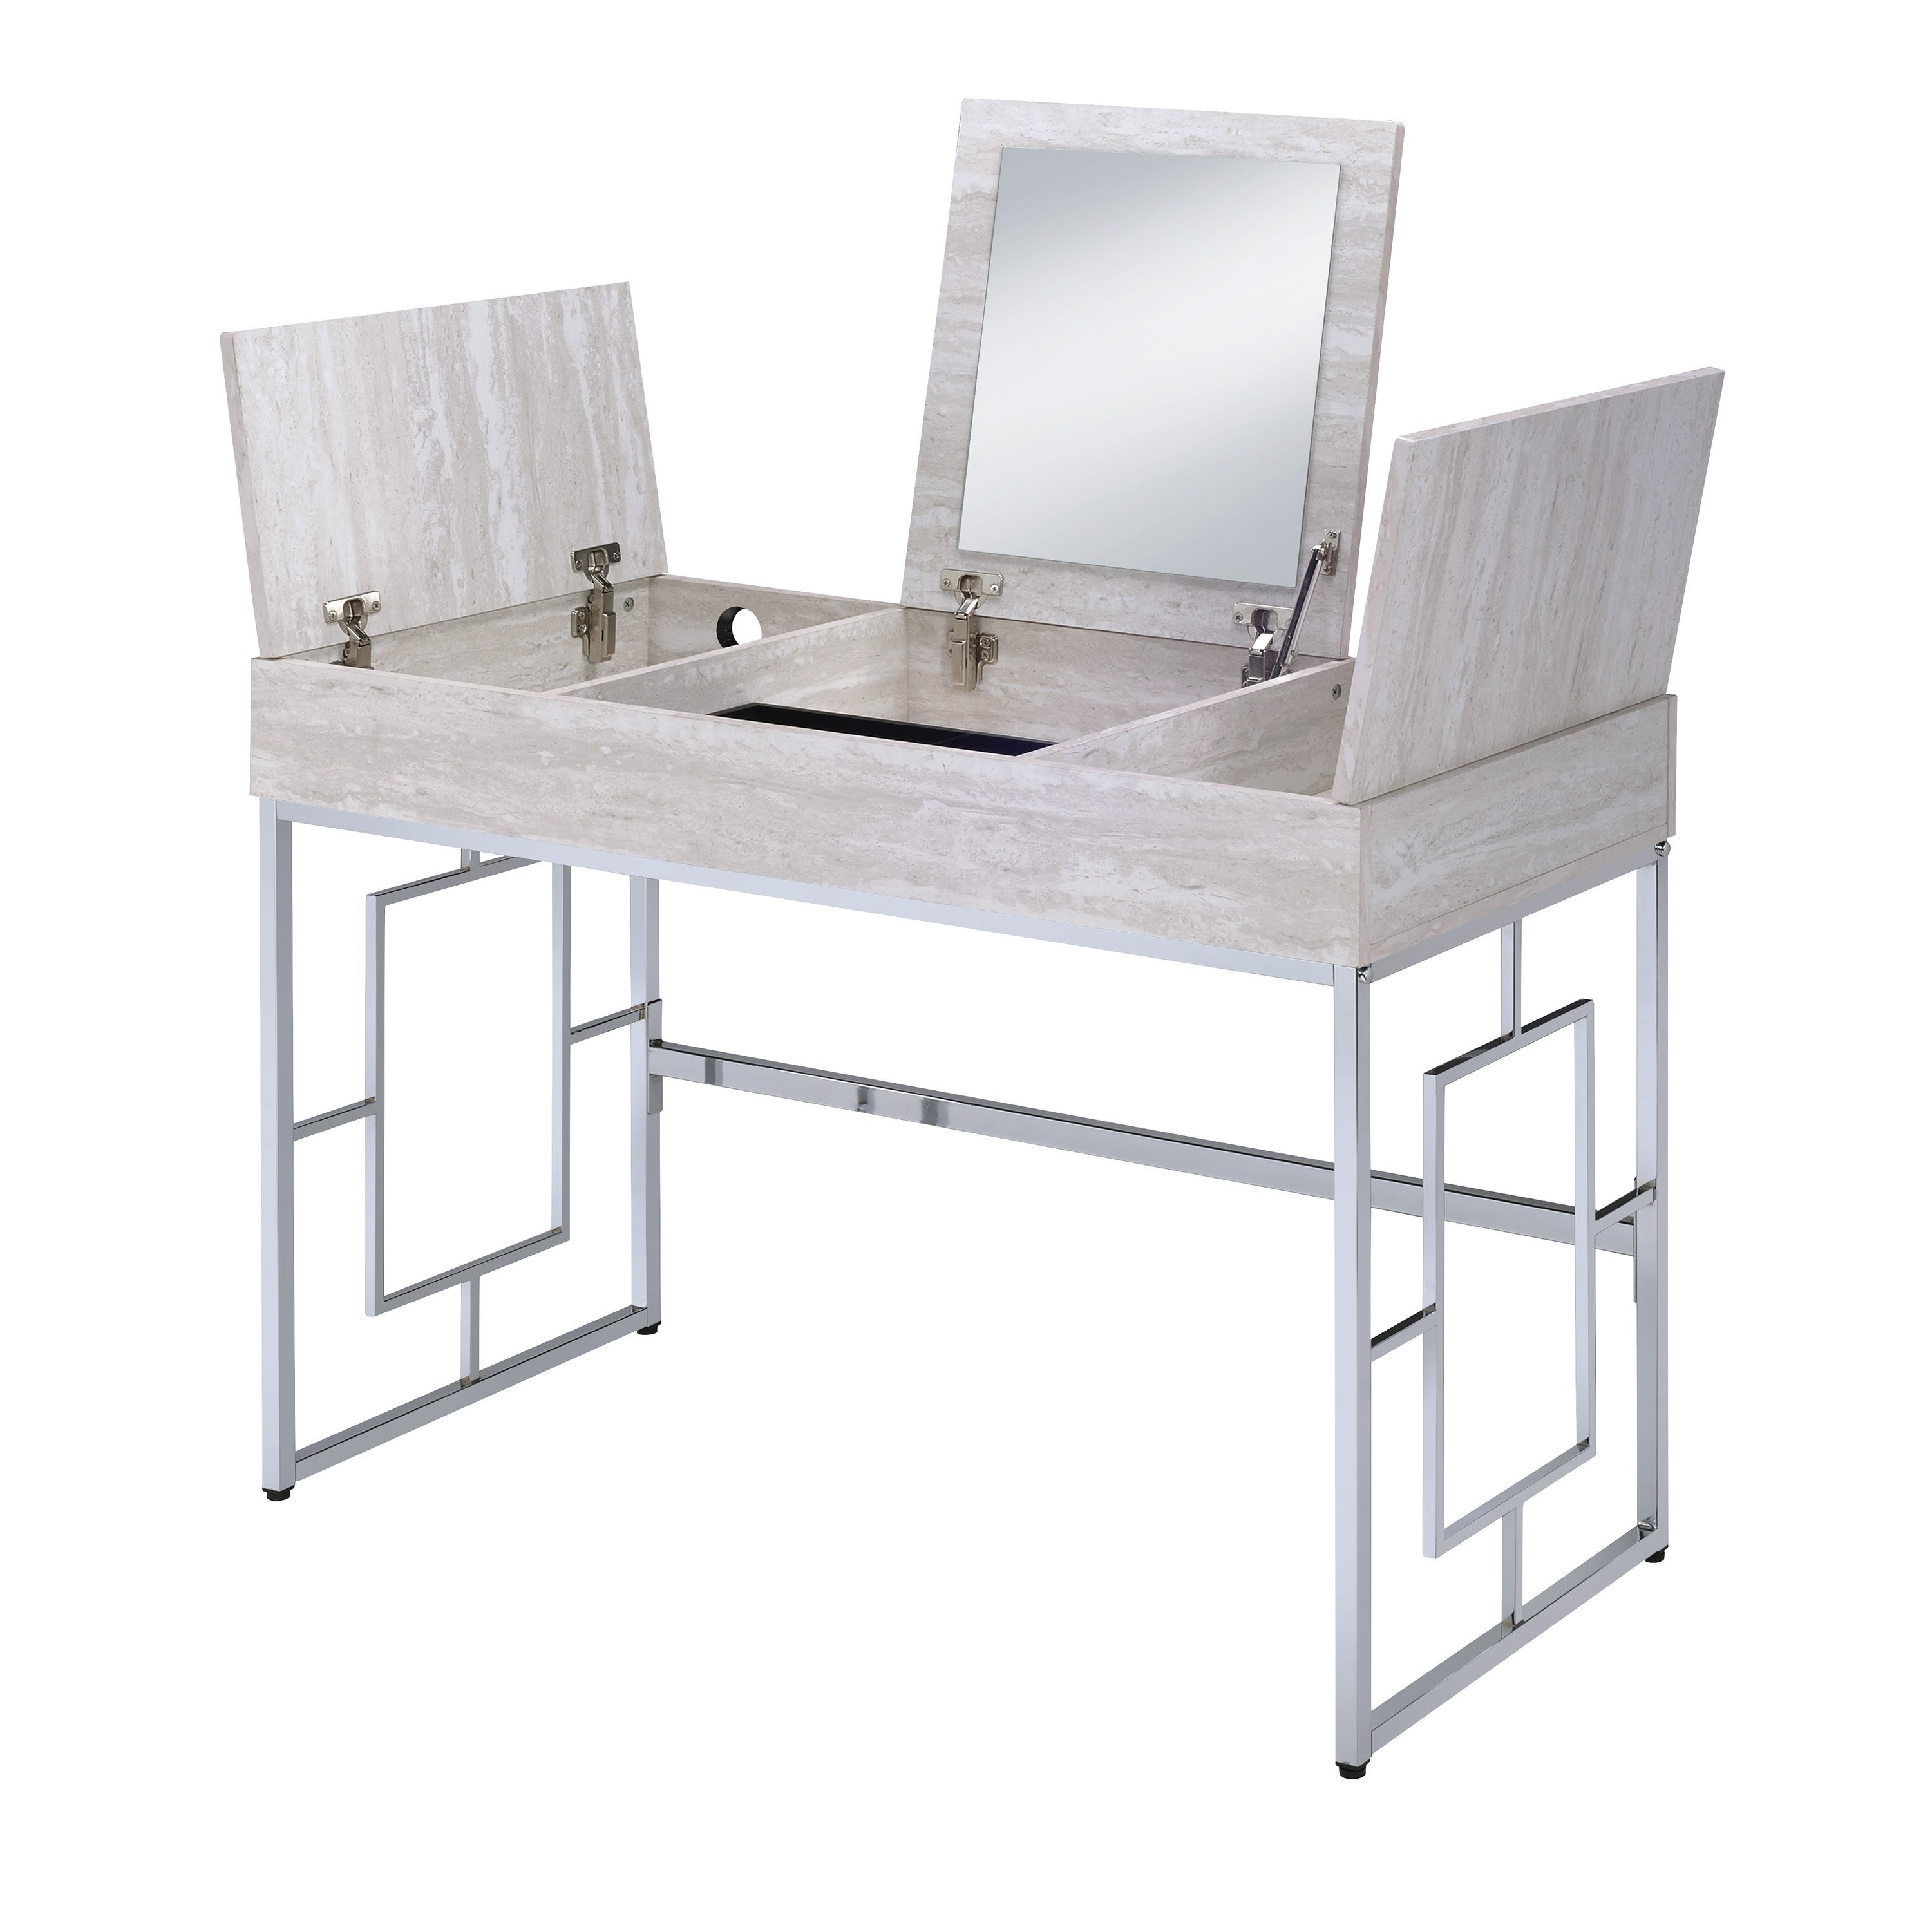 Vanity Desk With Lift Top Compartments